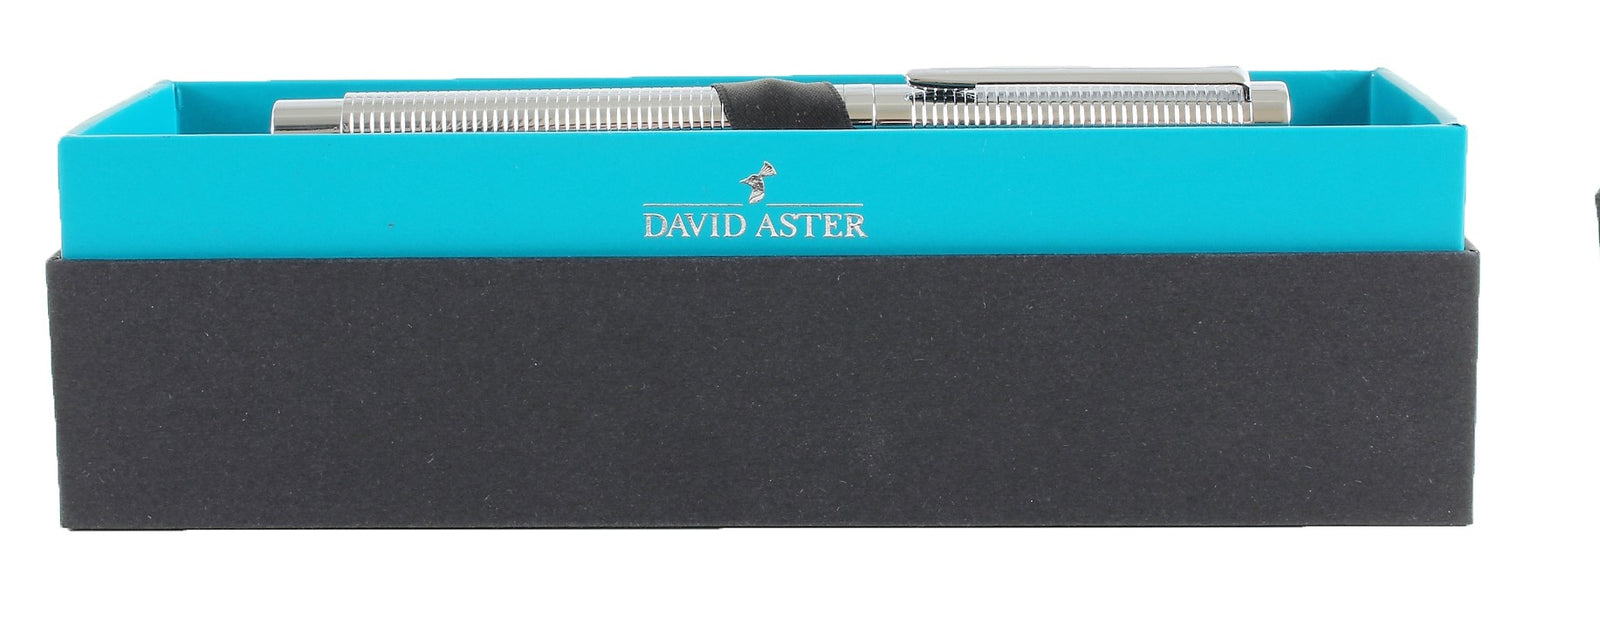 David Aster Chrome Ribbed Fountain Pen - Theodore Designs